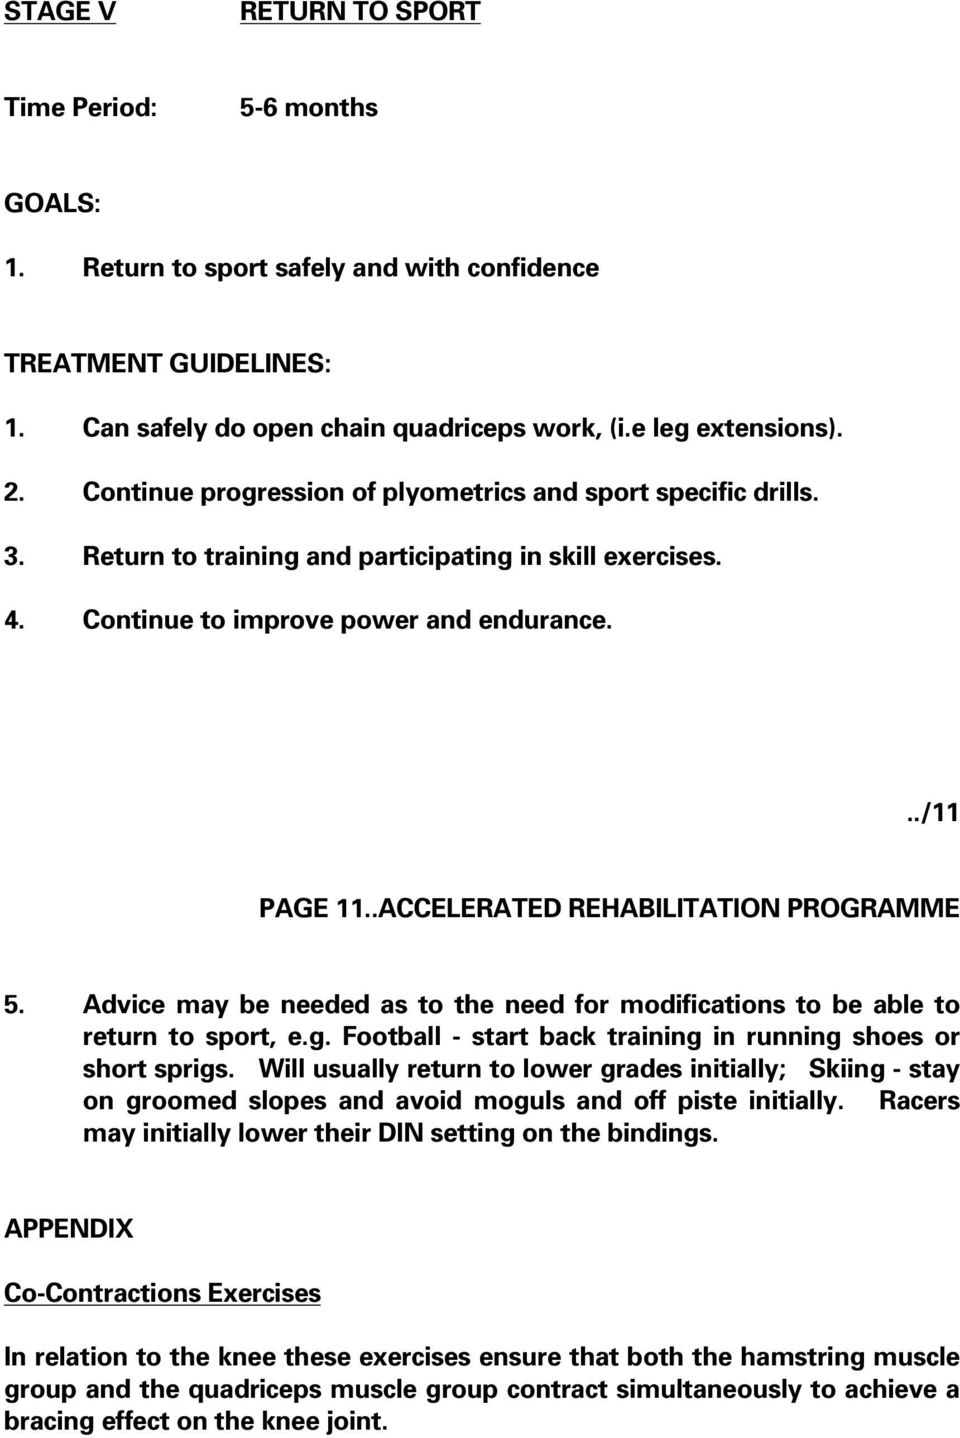 .ACCELERATED REHABILITATION PROGRAMME 5. Advice may be needed as to the need for modifications to be able to return to sport, e.g. Football - start back training in running shoes or short sprigs.